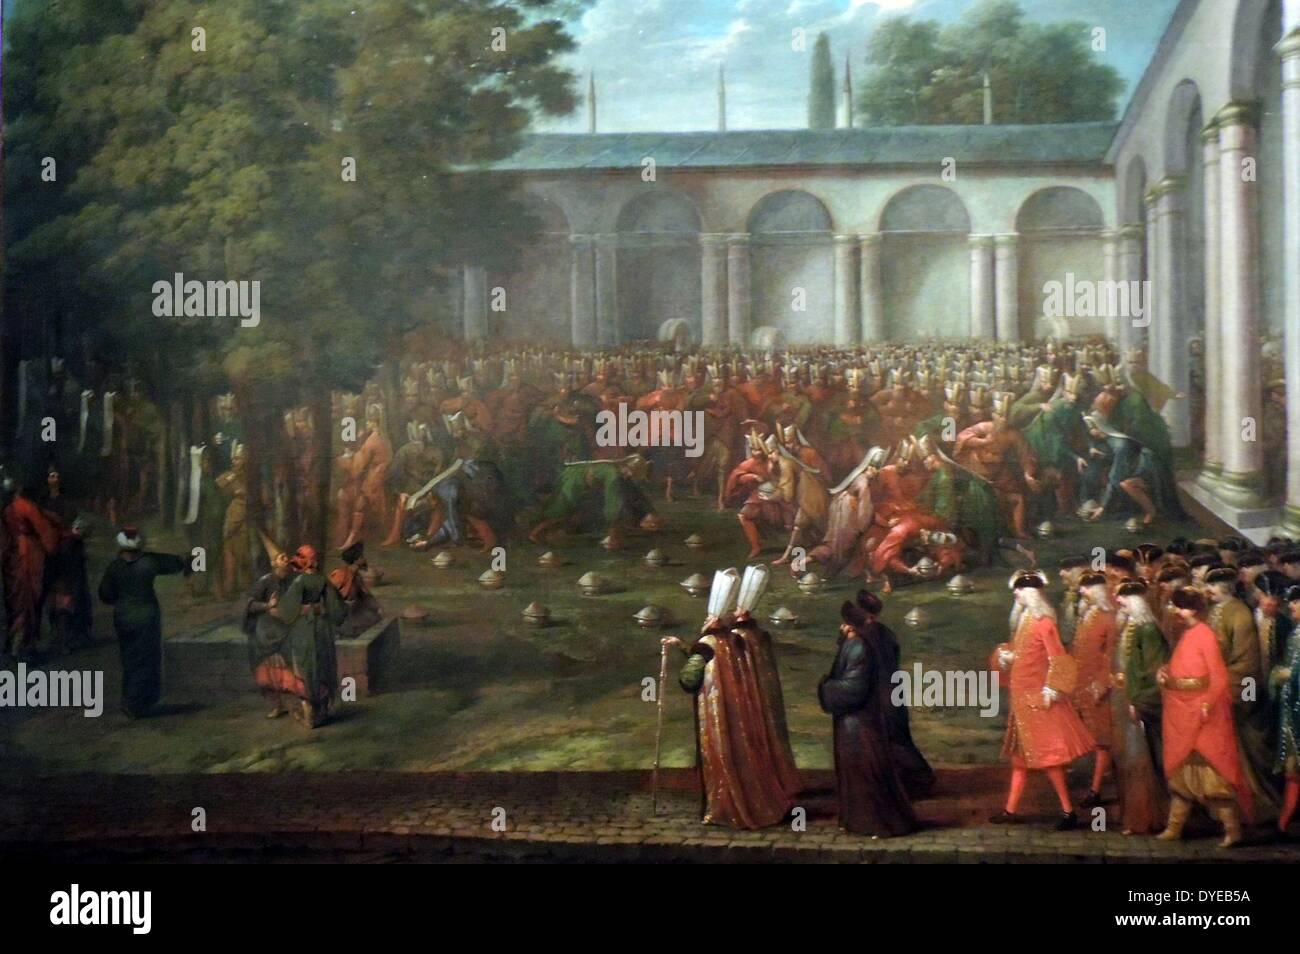 Cornelius Calkoen on Way to his Audience with Sultan Ahmed III by Jean Baptiste Vanmour (1671-1737) oil on canvas, - Stock Image